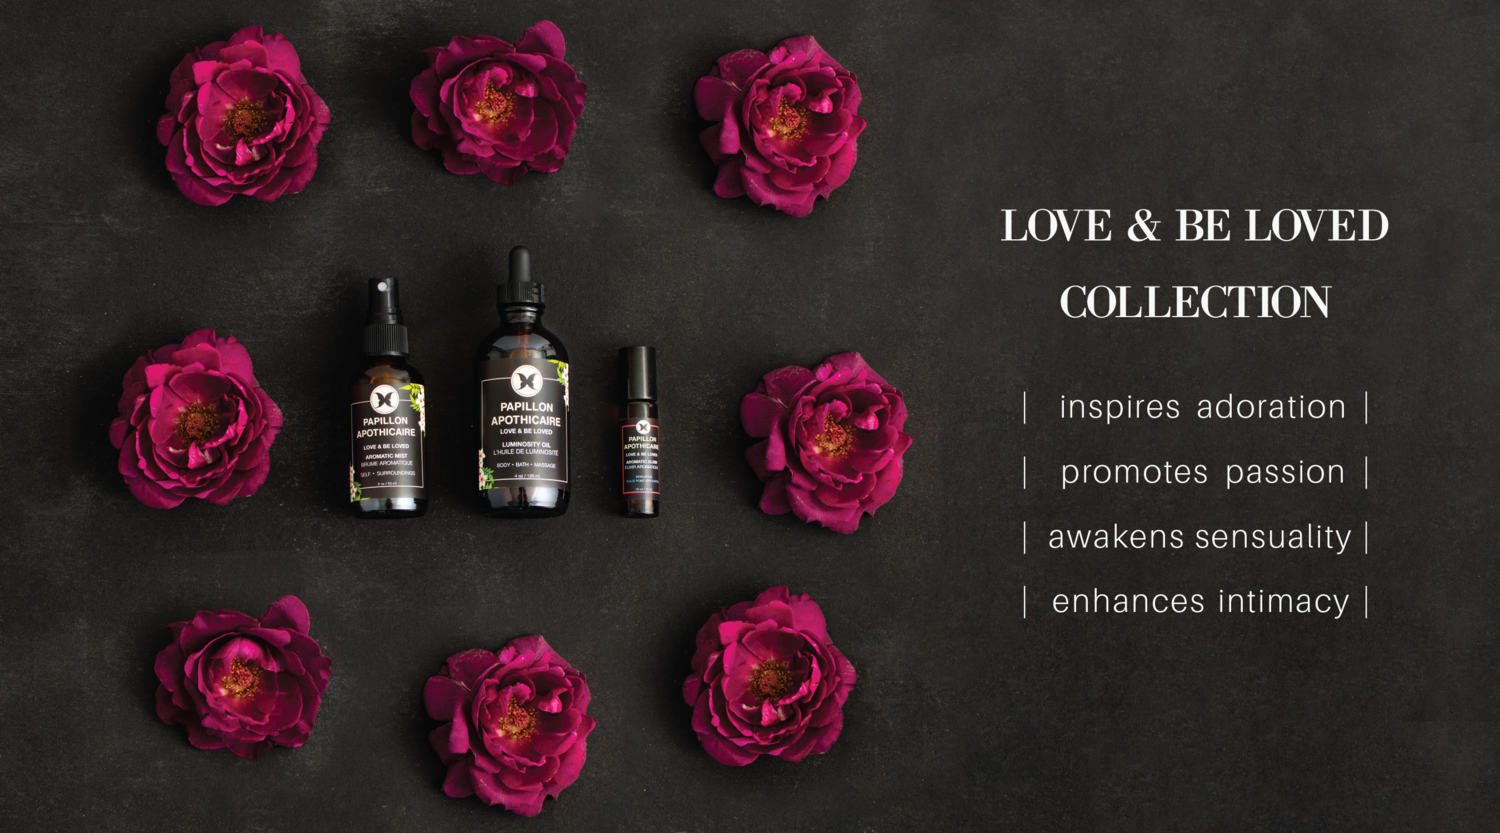 papillon-apothicaire-love-and-be-loved-aphrodisiac-organic-aromatherapy-collection-with-roses